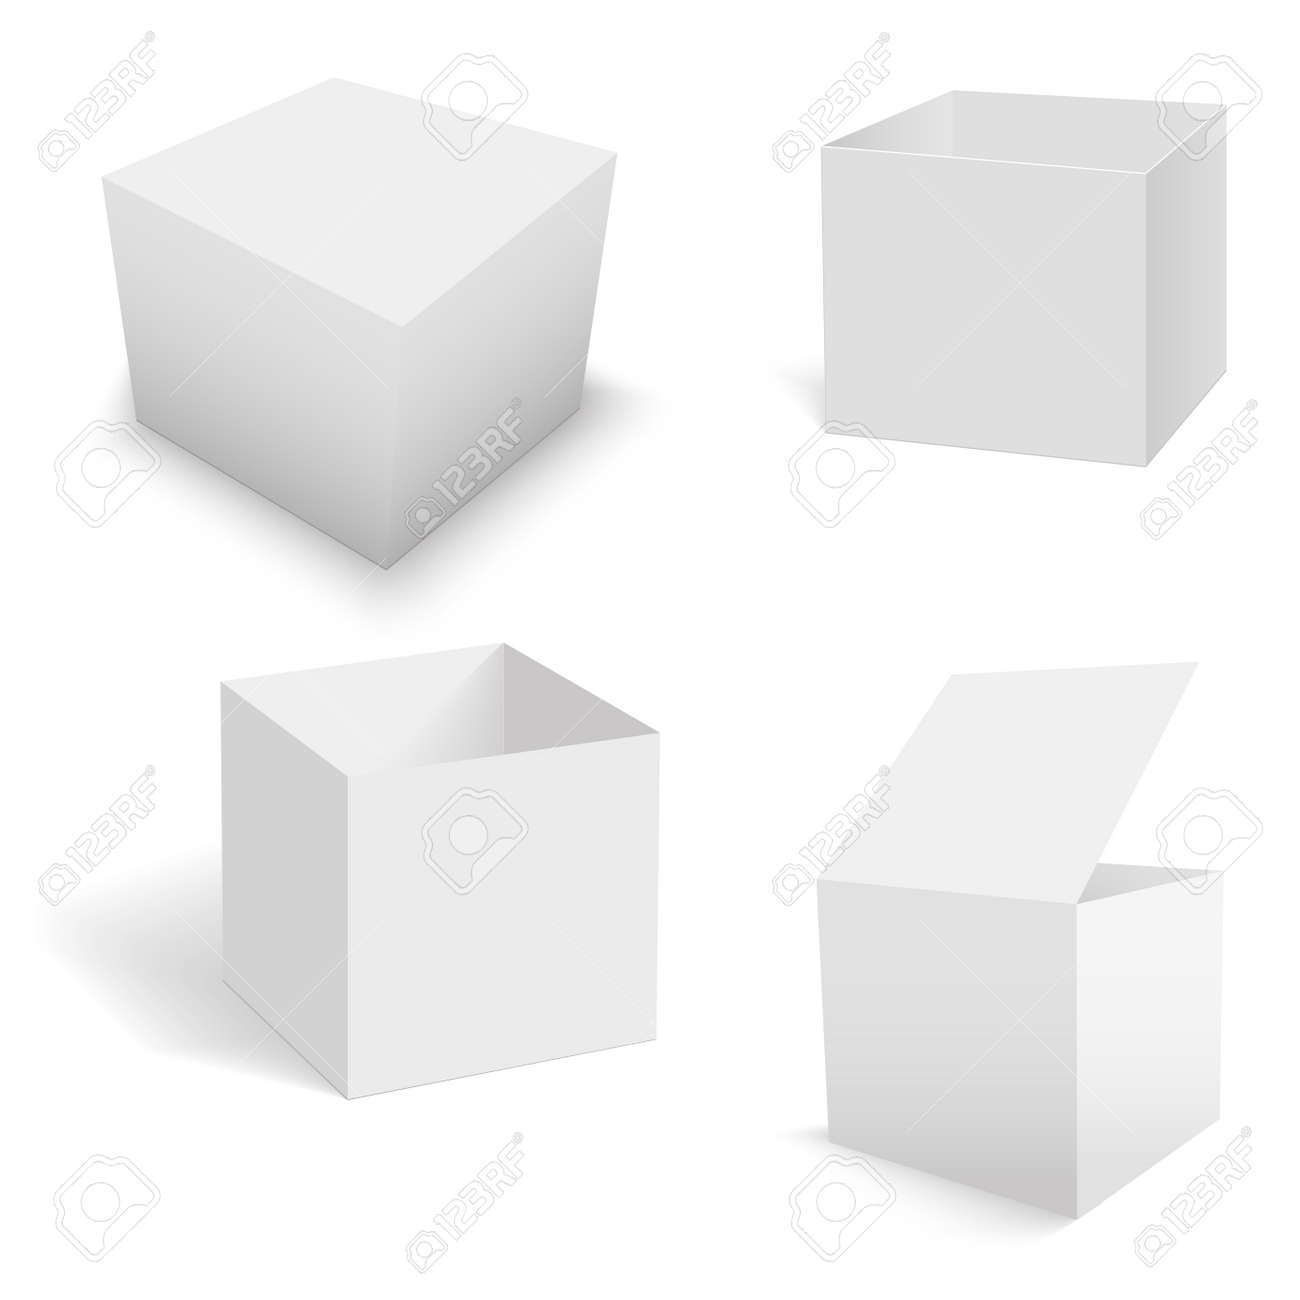 Set of white square boxes templates. Vector - 158808675